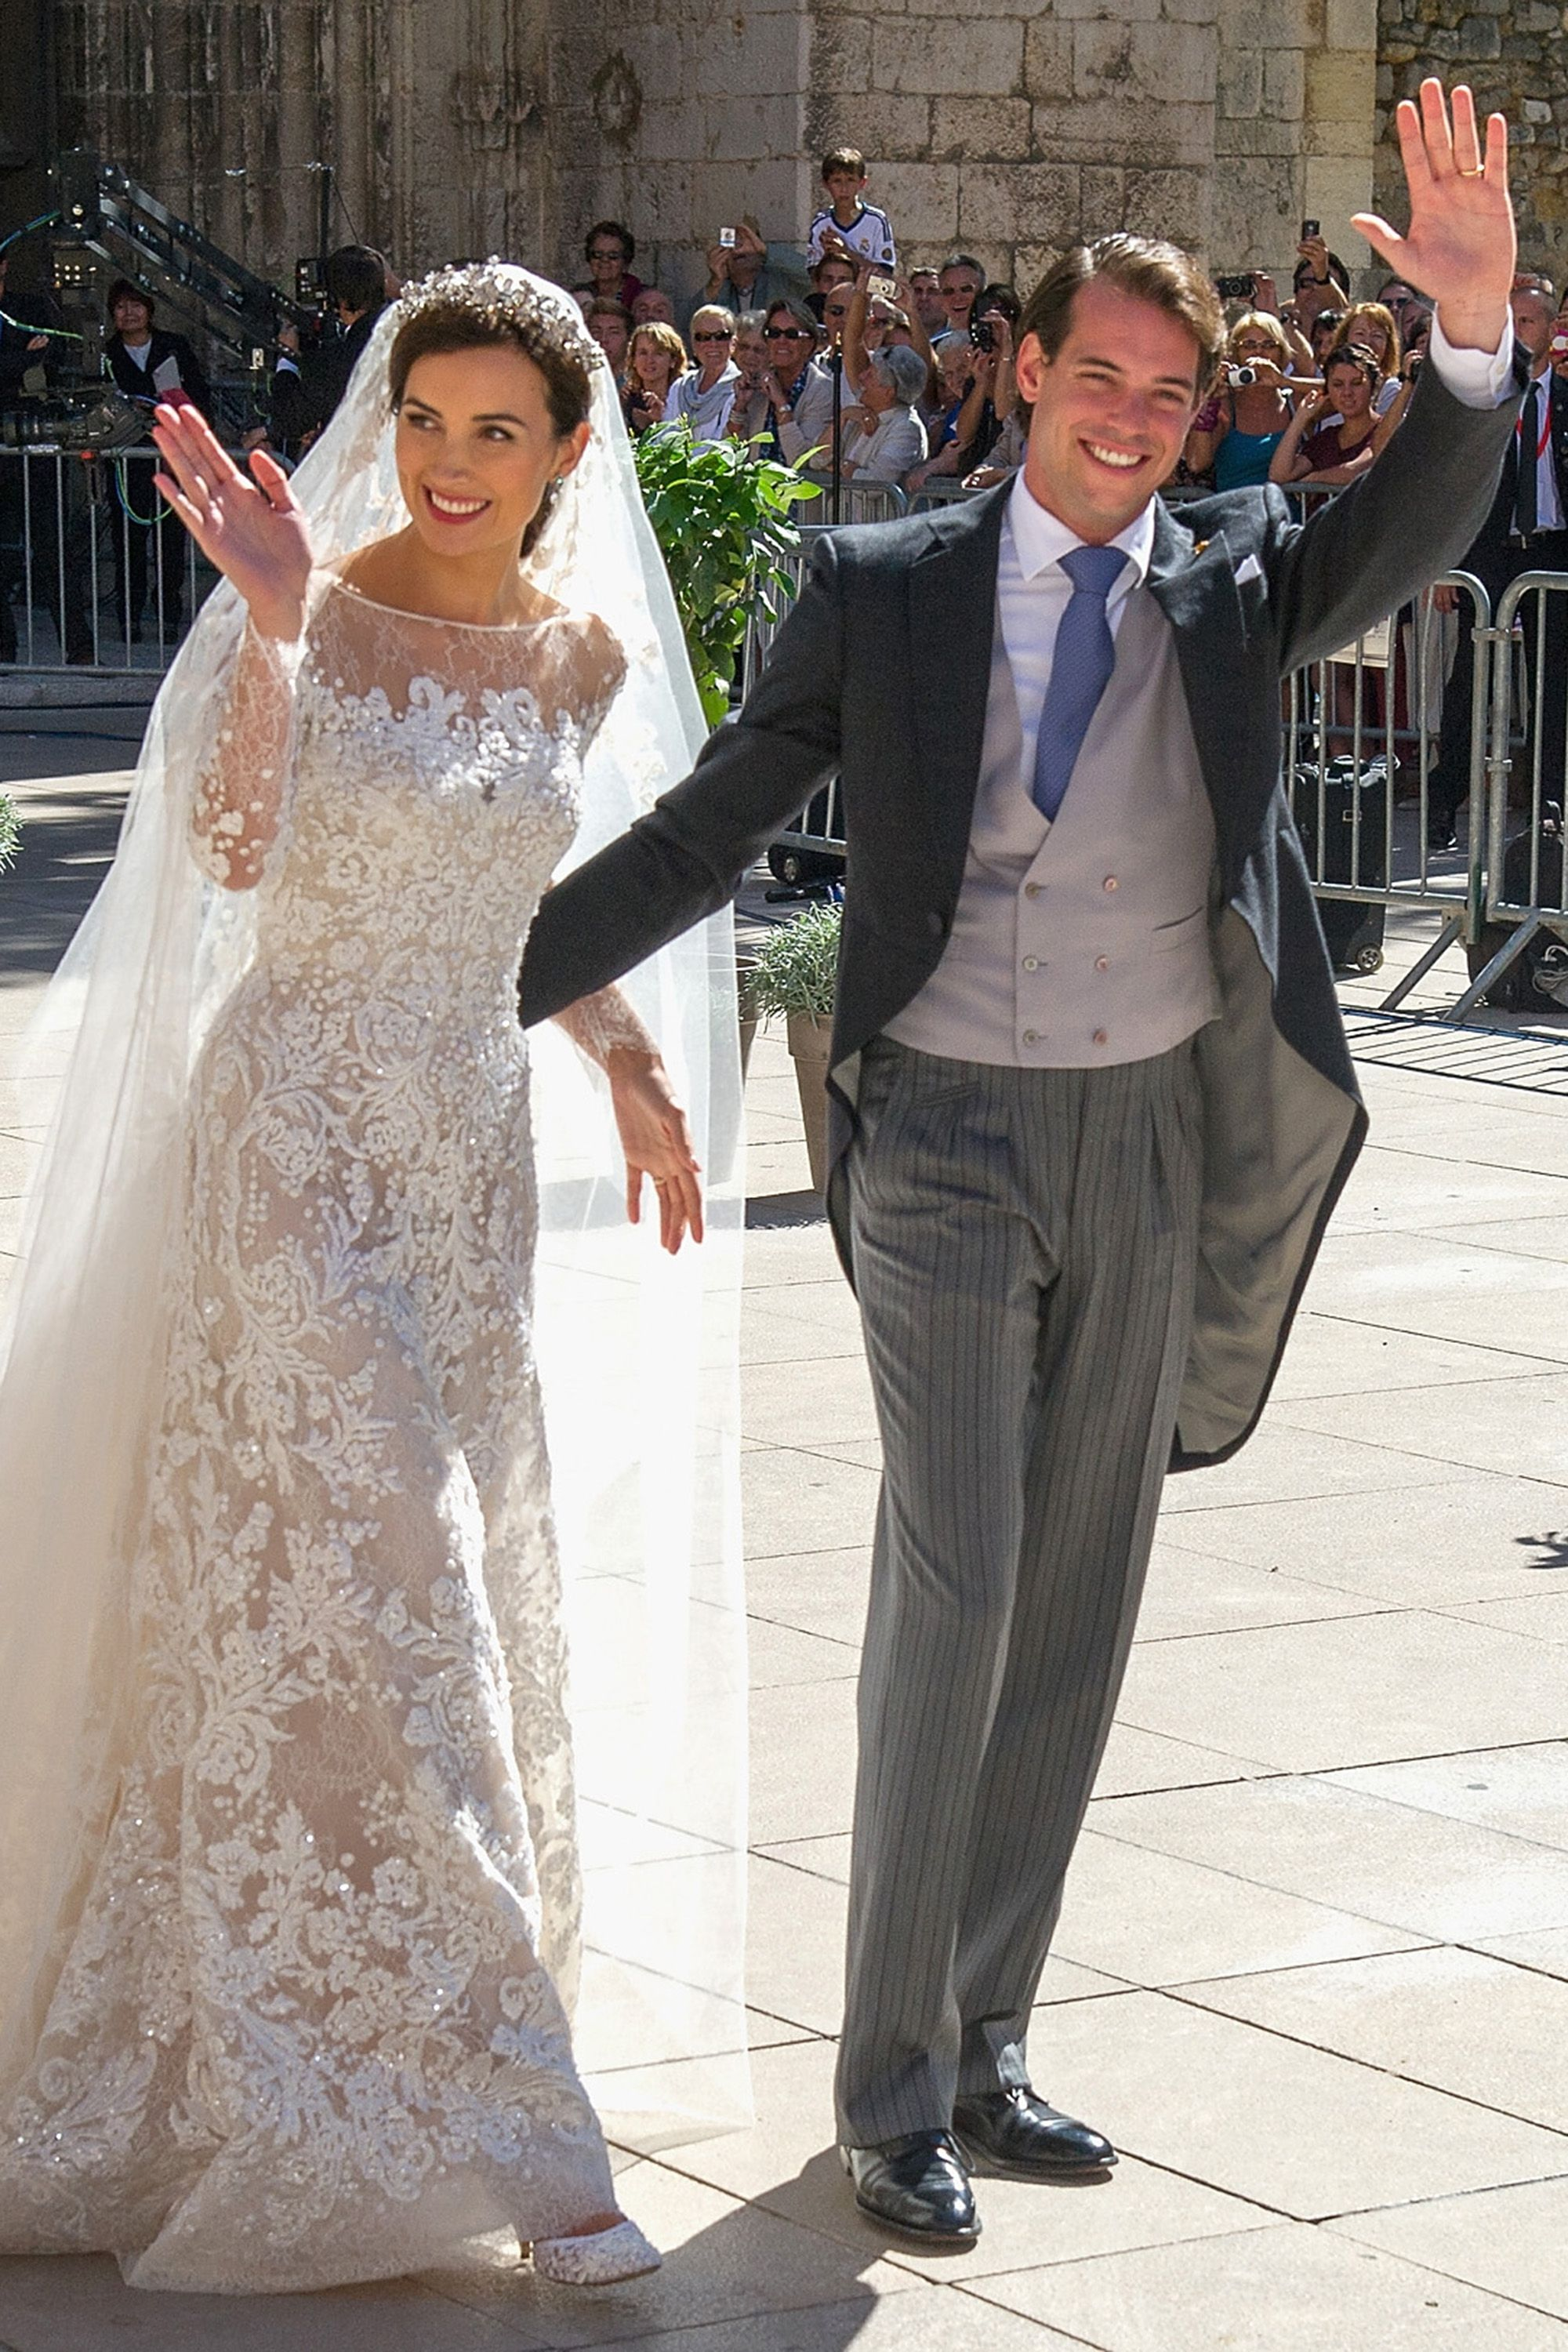 30 Best Royal Weddings Of All Time Family Throughout History: Princess Claire Wedding Dress At Websimilar.org